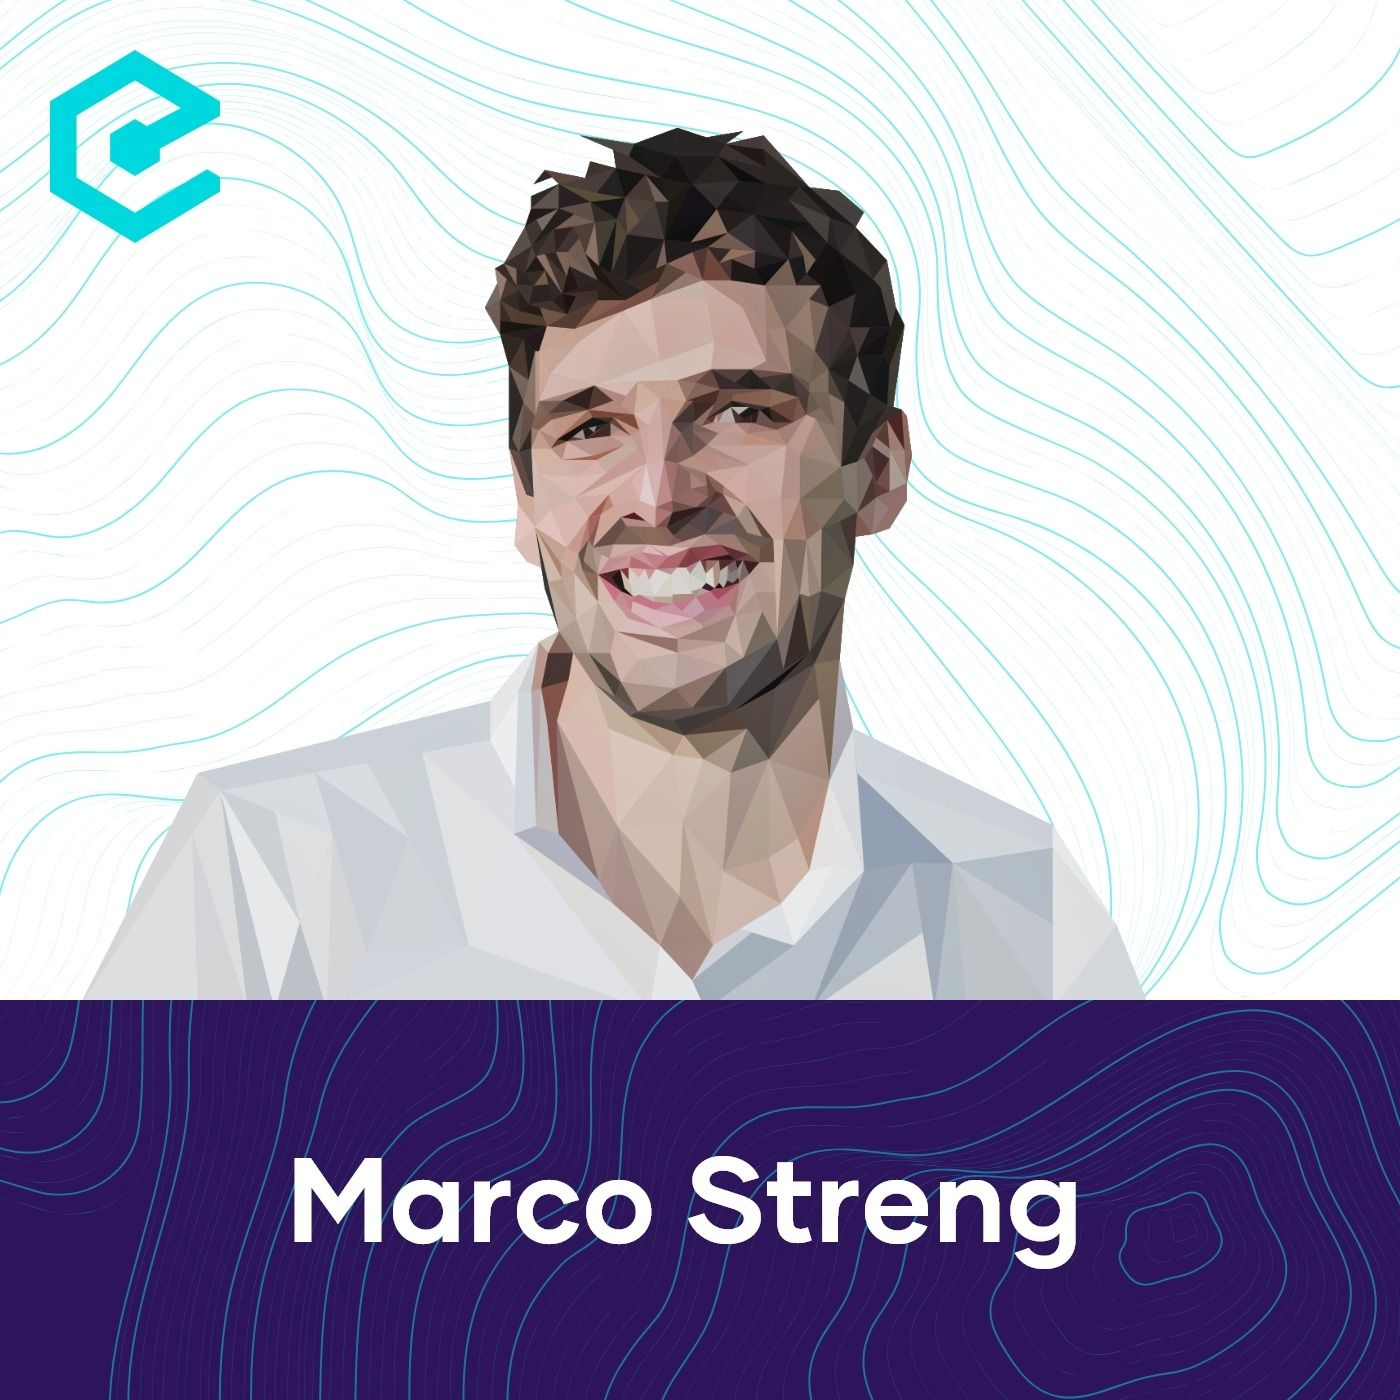 Marco Streng: Genesis Mining – Taking Bitcoin Mining to the Cloud